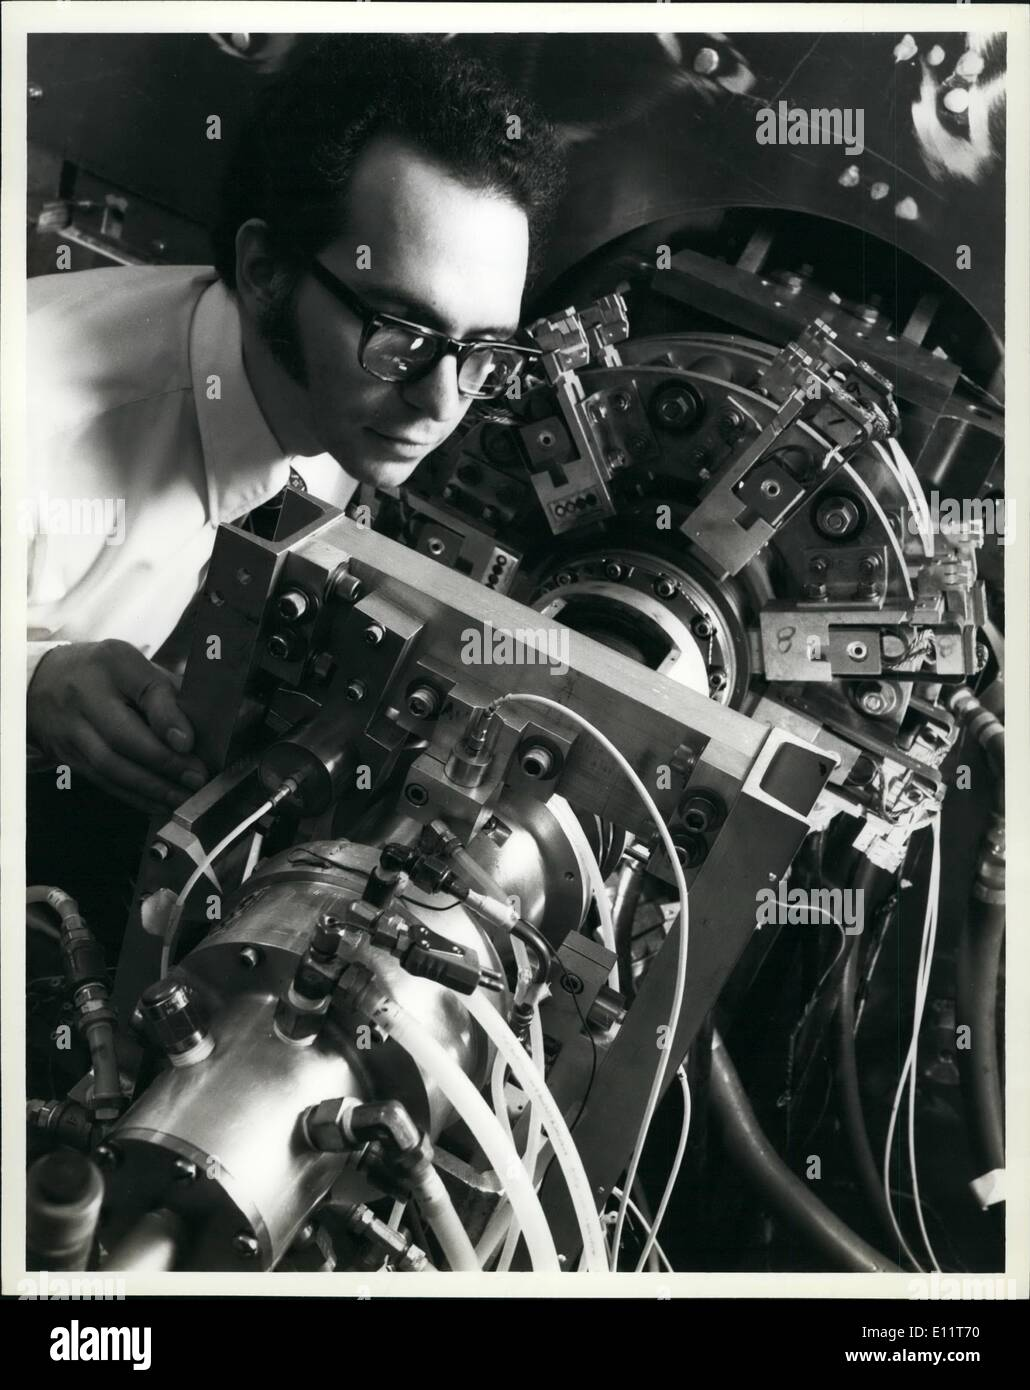 Nov. 11, 1979 - General Electric engineers announced today that they had successfully put the key component of an advanced superconducting generator thought its most severe qualifying test spinning its 13 foot long, one and one half ton rotor at 3,600 revolutions per minute while cooled to a frigid 452 F below zero. the tests at the GE Research and development center in Schenectady, NY. confirmed that the experimental generator could be able to produce as much electricity as a conventional generator twice its size and weight. Following one of the tests, Dr. Trifon E - Stock Image